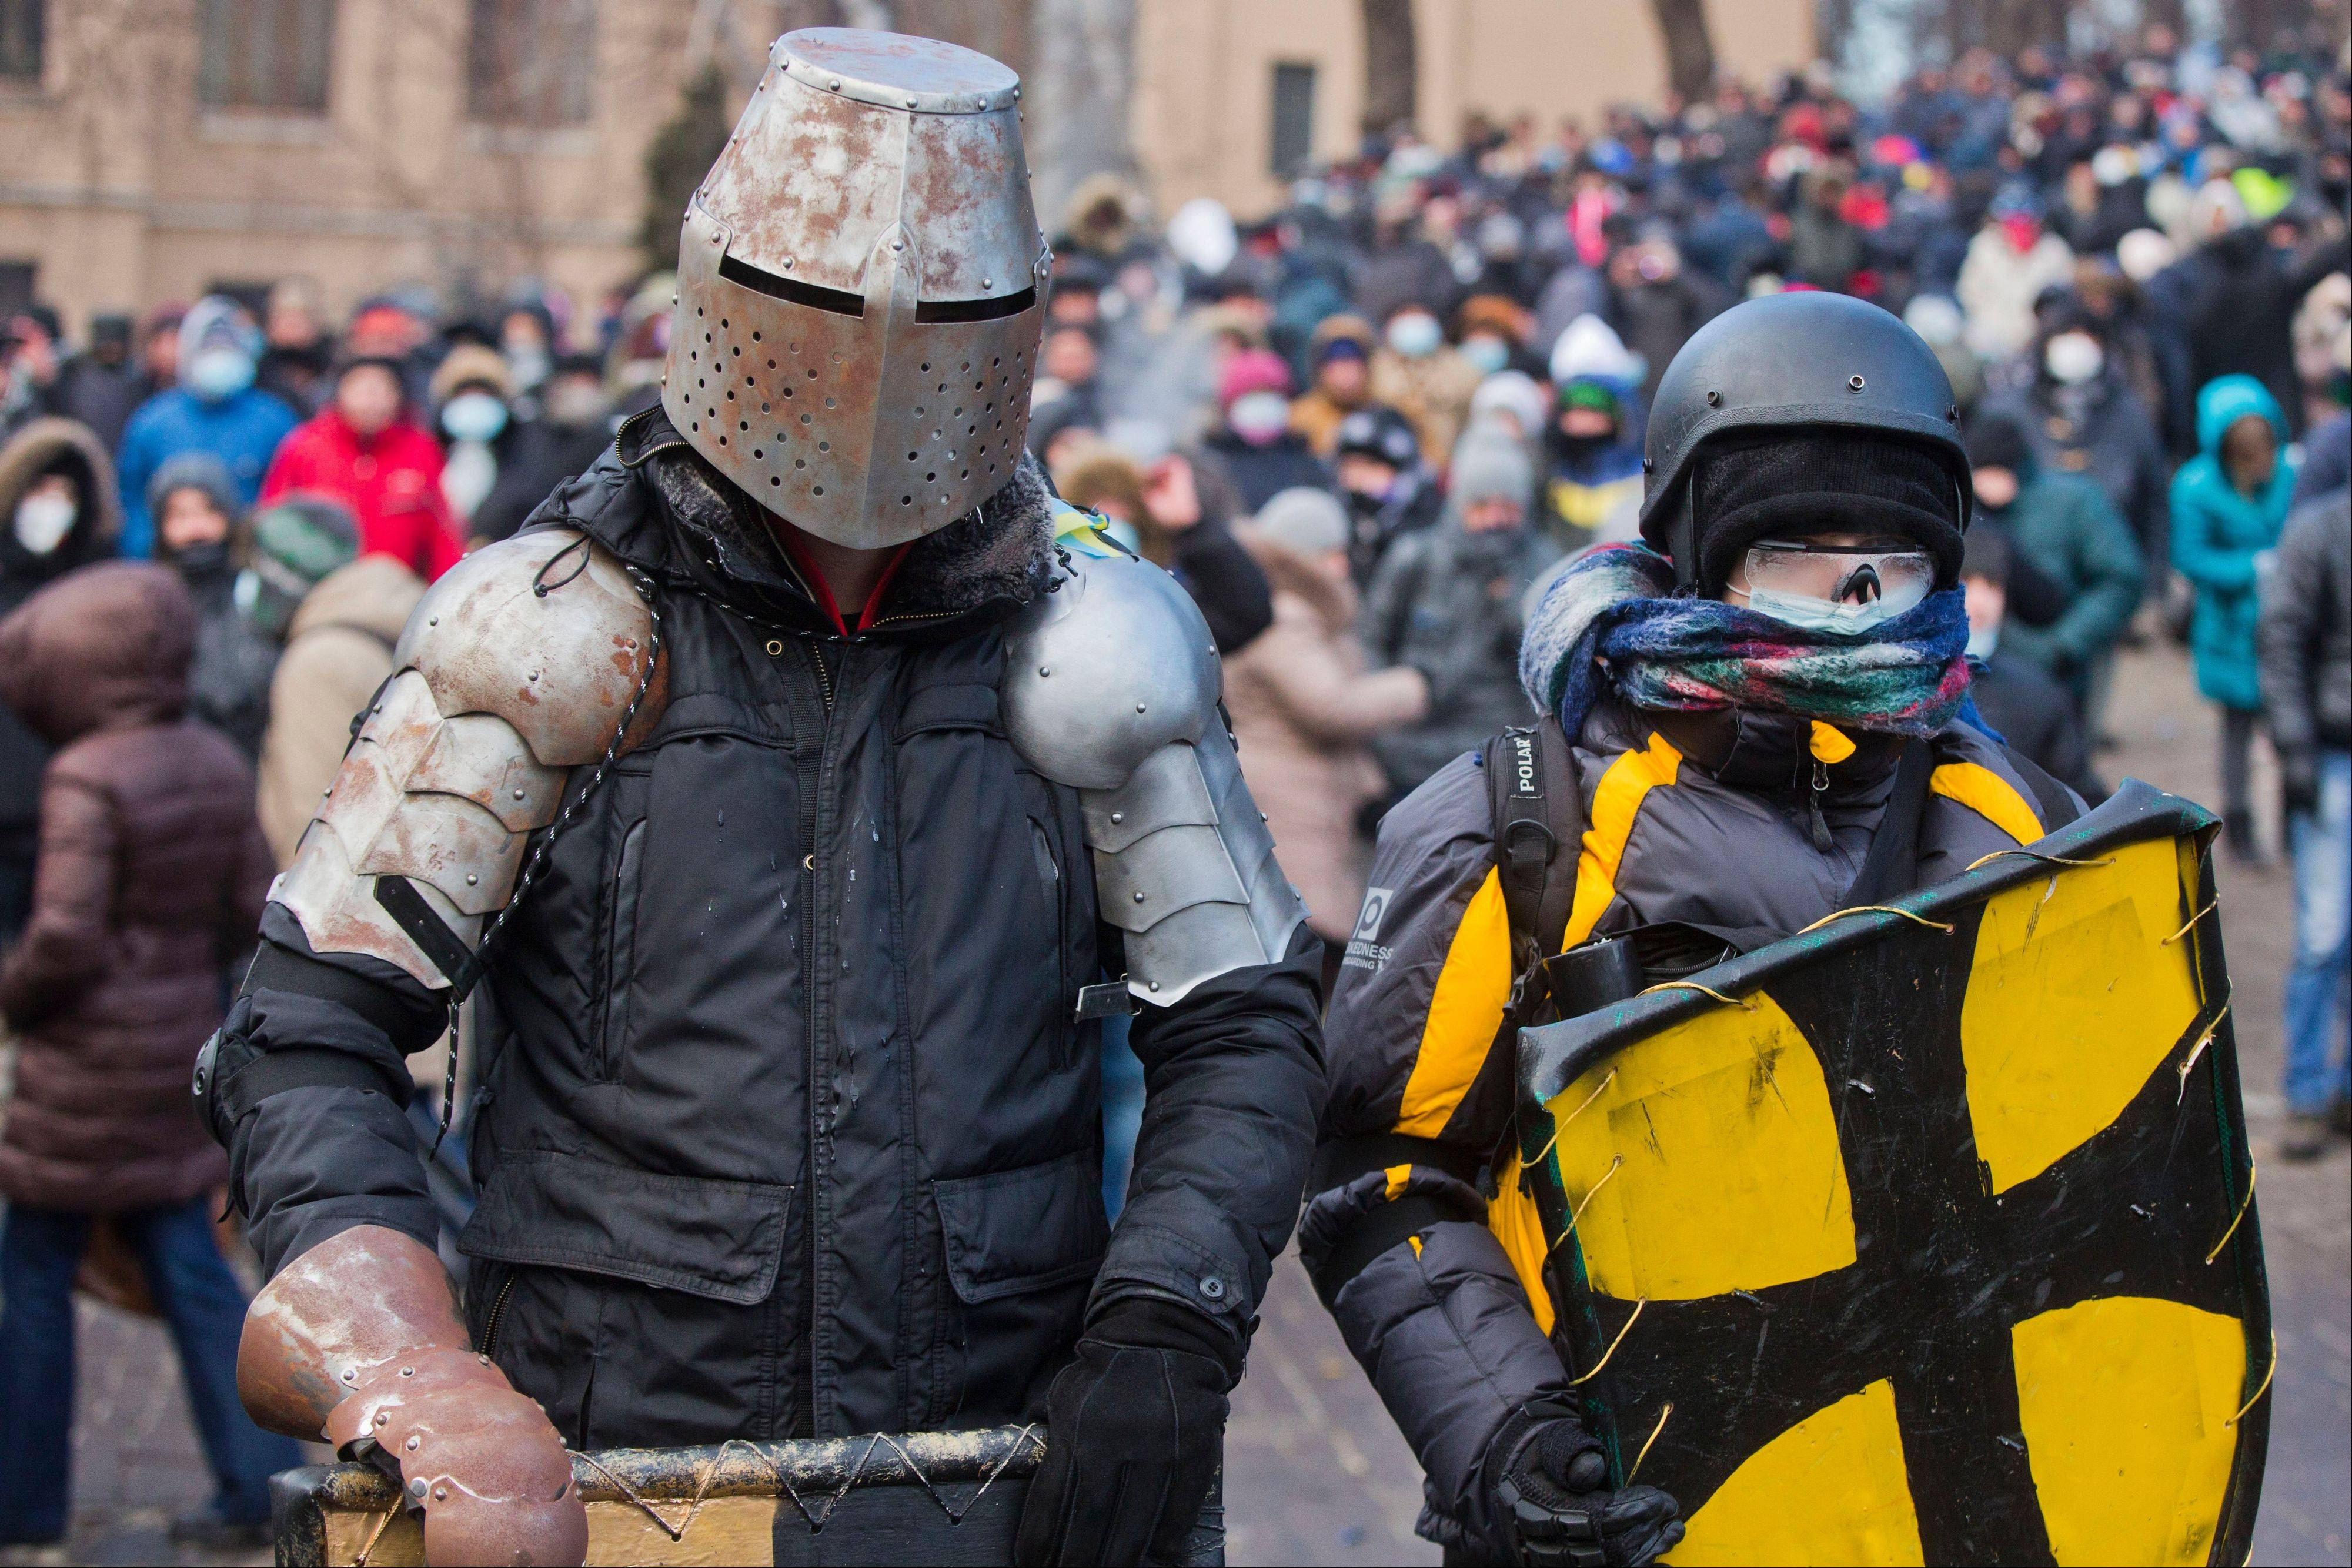 Protesters clad in improvised protective gear prepare for a clash with police in central Kiev, Ukraine.